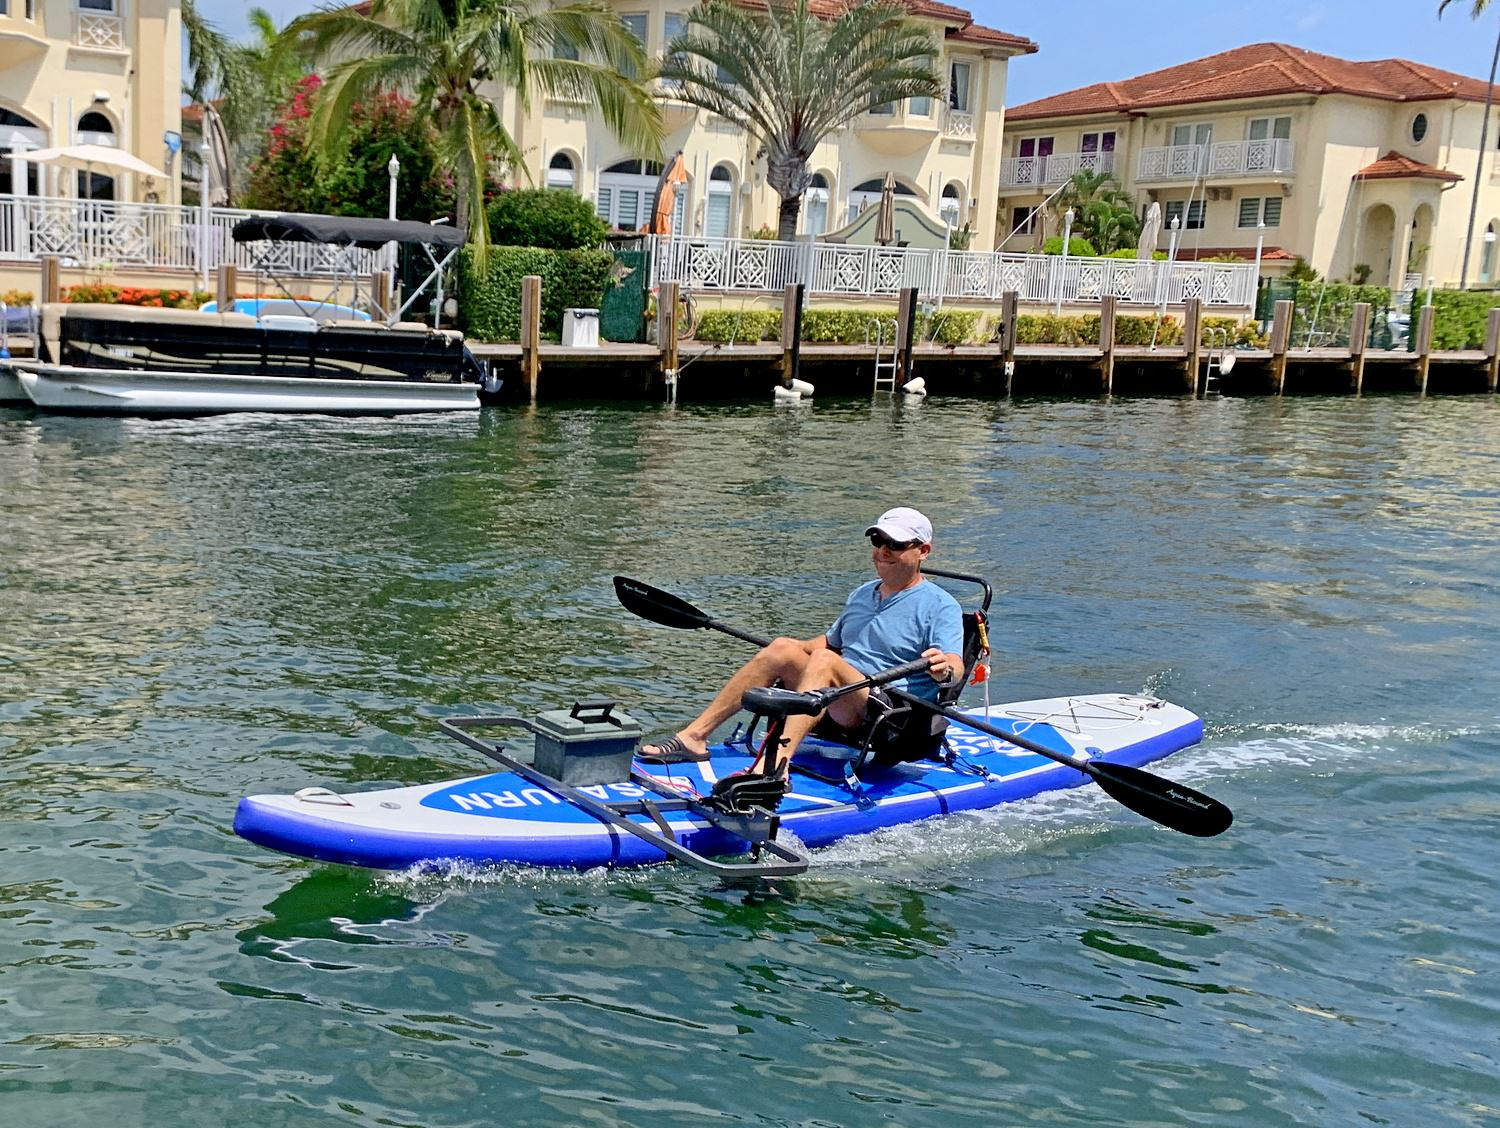 Ride with electric trolling motor